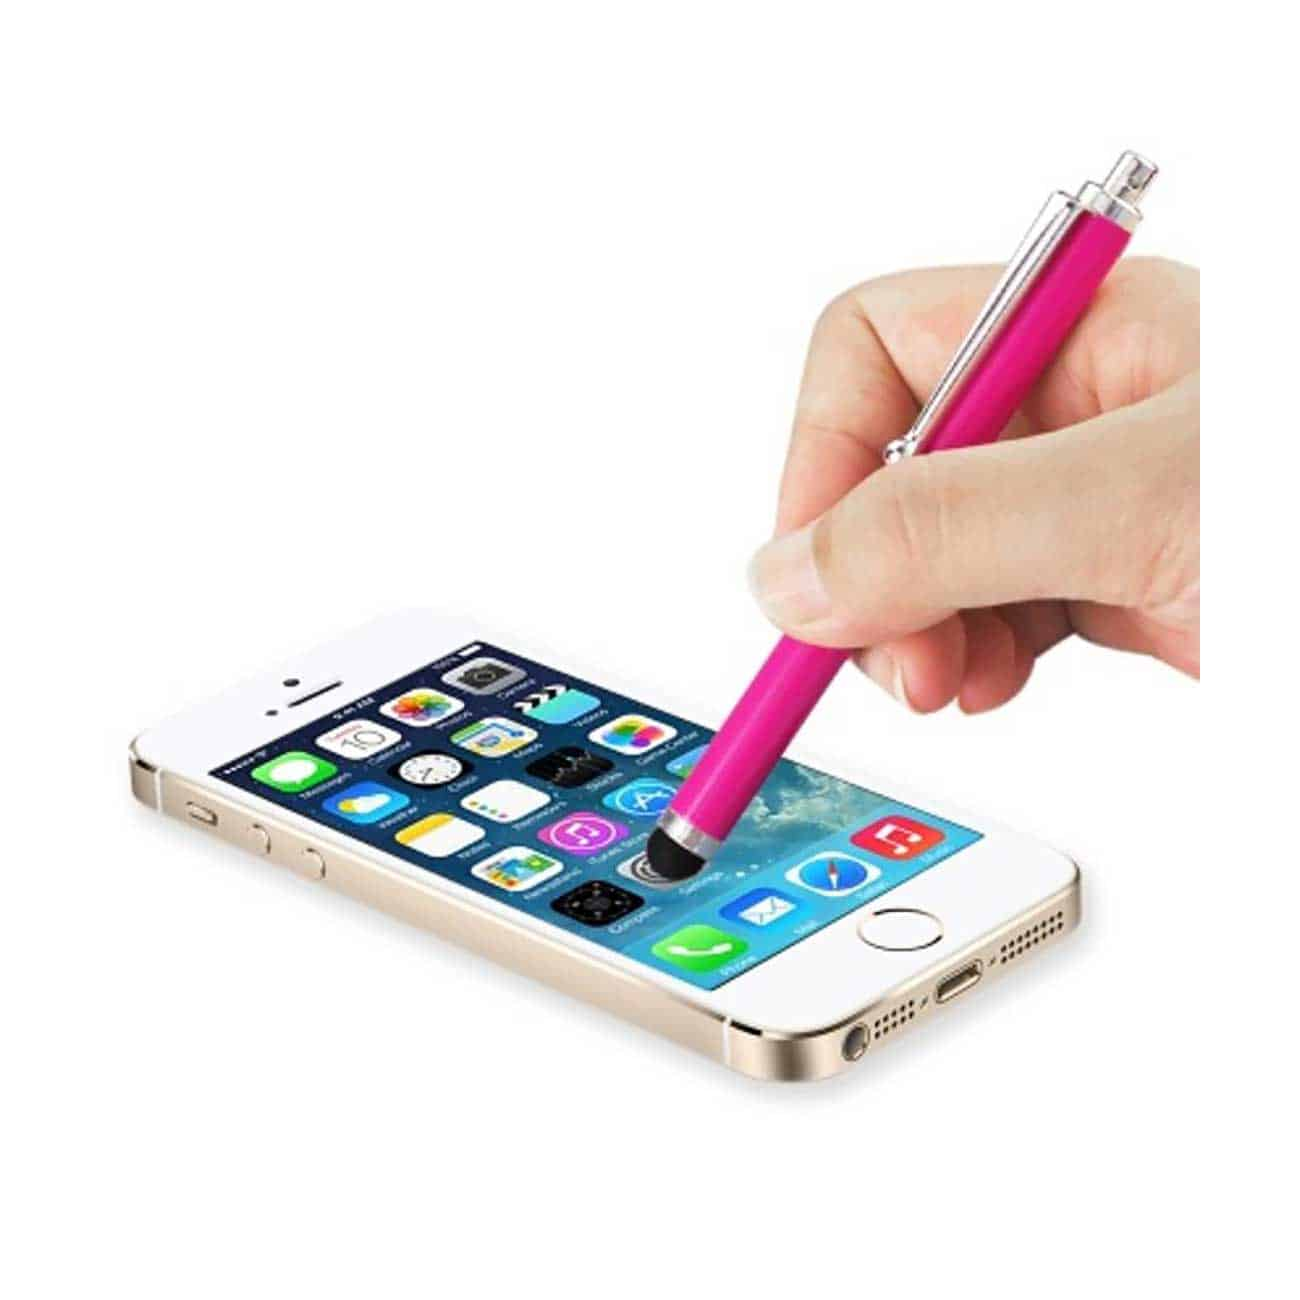 MINI STYLUS TOUCH SCREEN PEN WITH CLIP IN HOT PINK